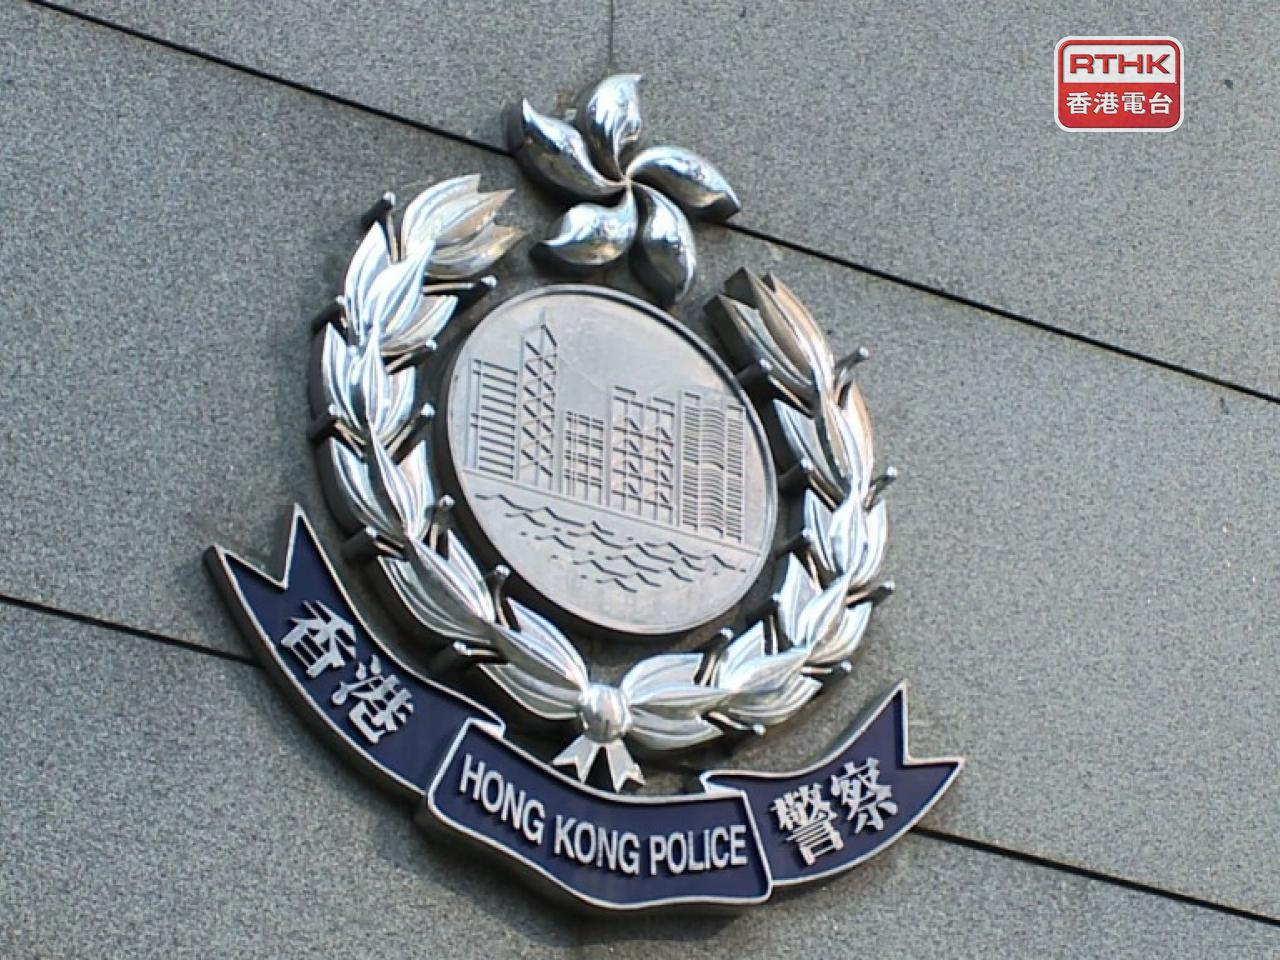 Police have so far arrested more than 60 people in connection with the Yuen Long mob attack. File photo: RTHK